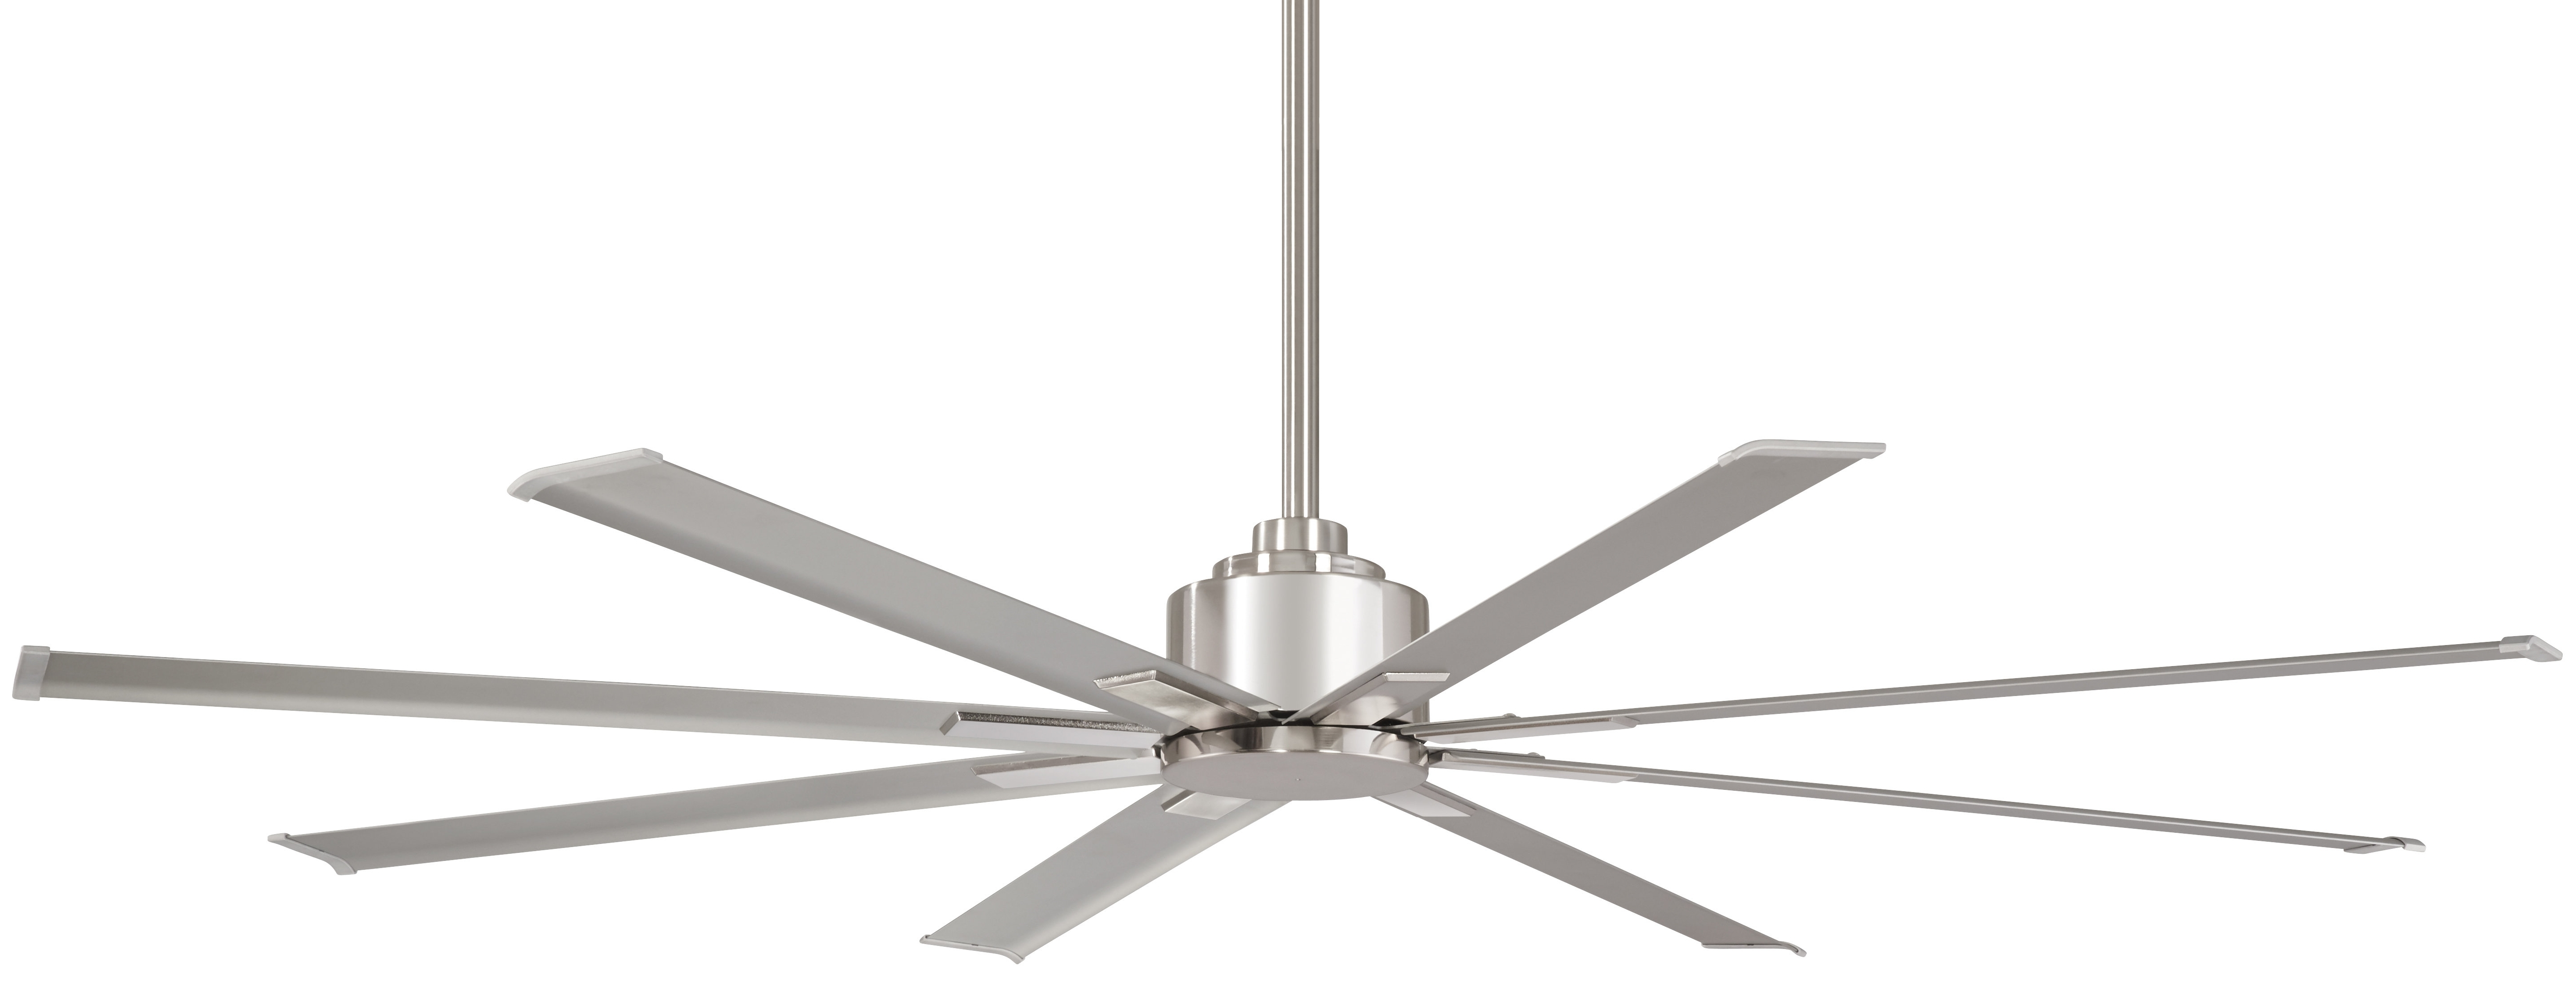 """Trendy Minka Aire 65"""" Xtreme 8 Blade Outdoor Ceiling Fan With Remote Inside Metal Outdoor Ceiling Fans With Light (View 4 of 20)"""